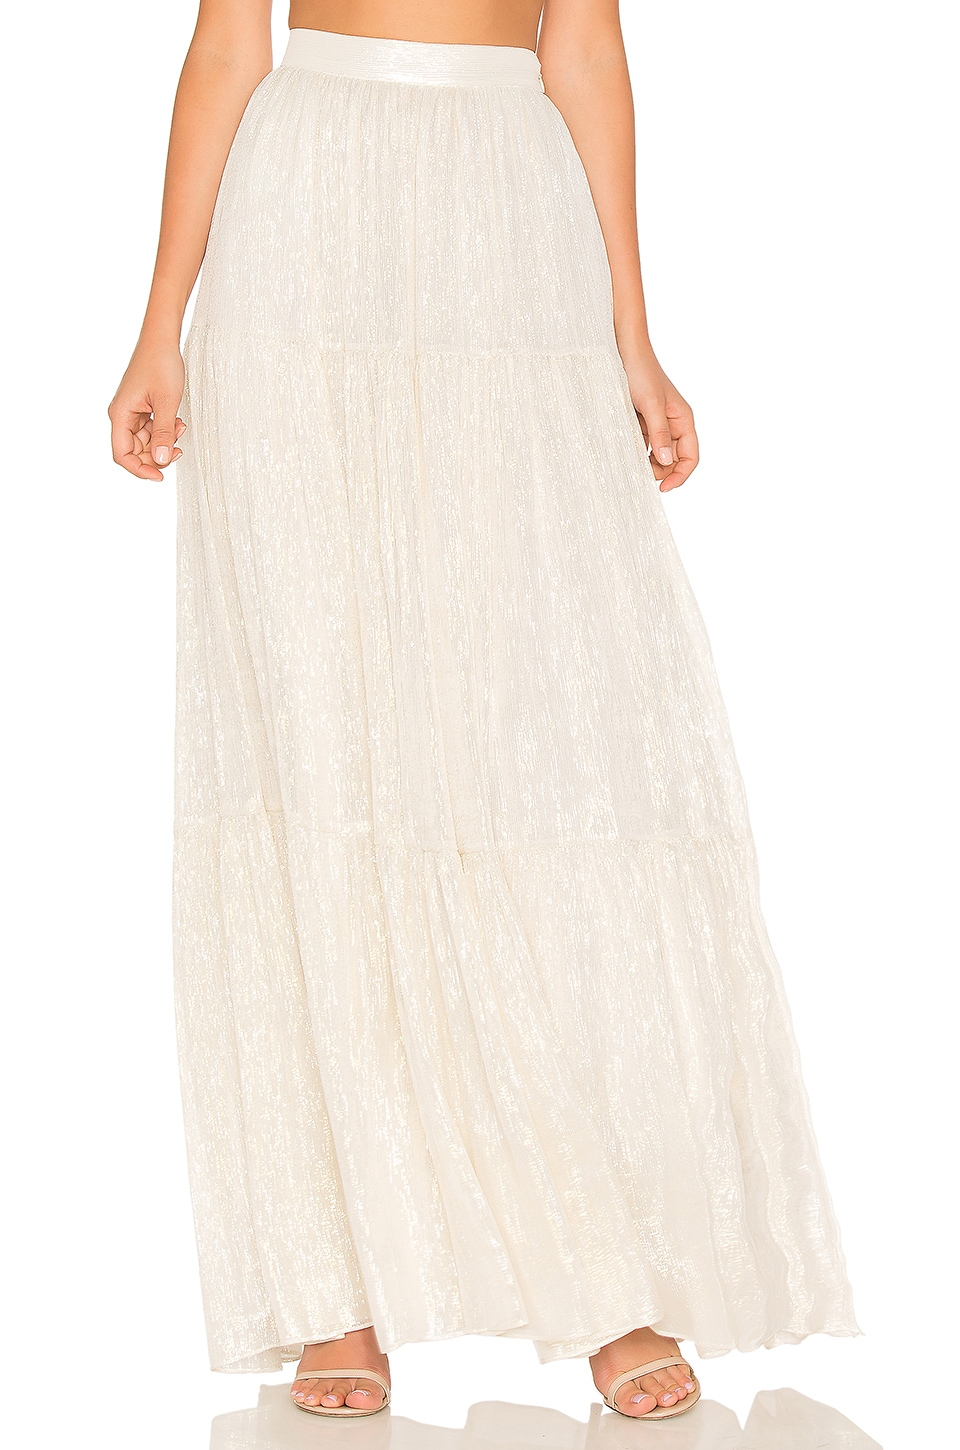 Erin Fetherston La Gitane Maxi Skirt in Moonlight Shimmer